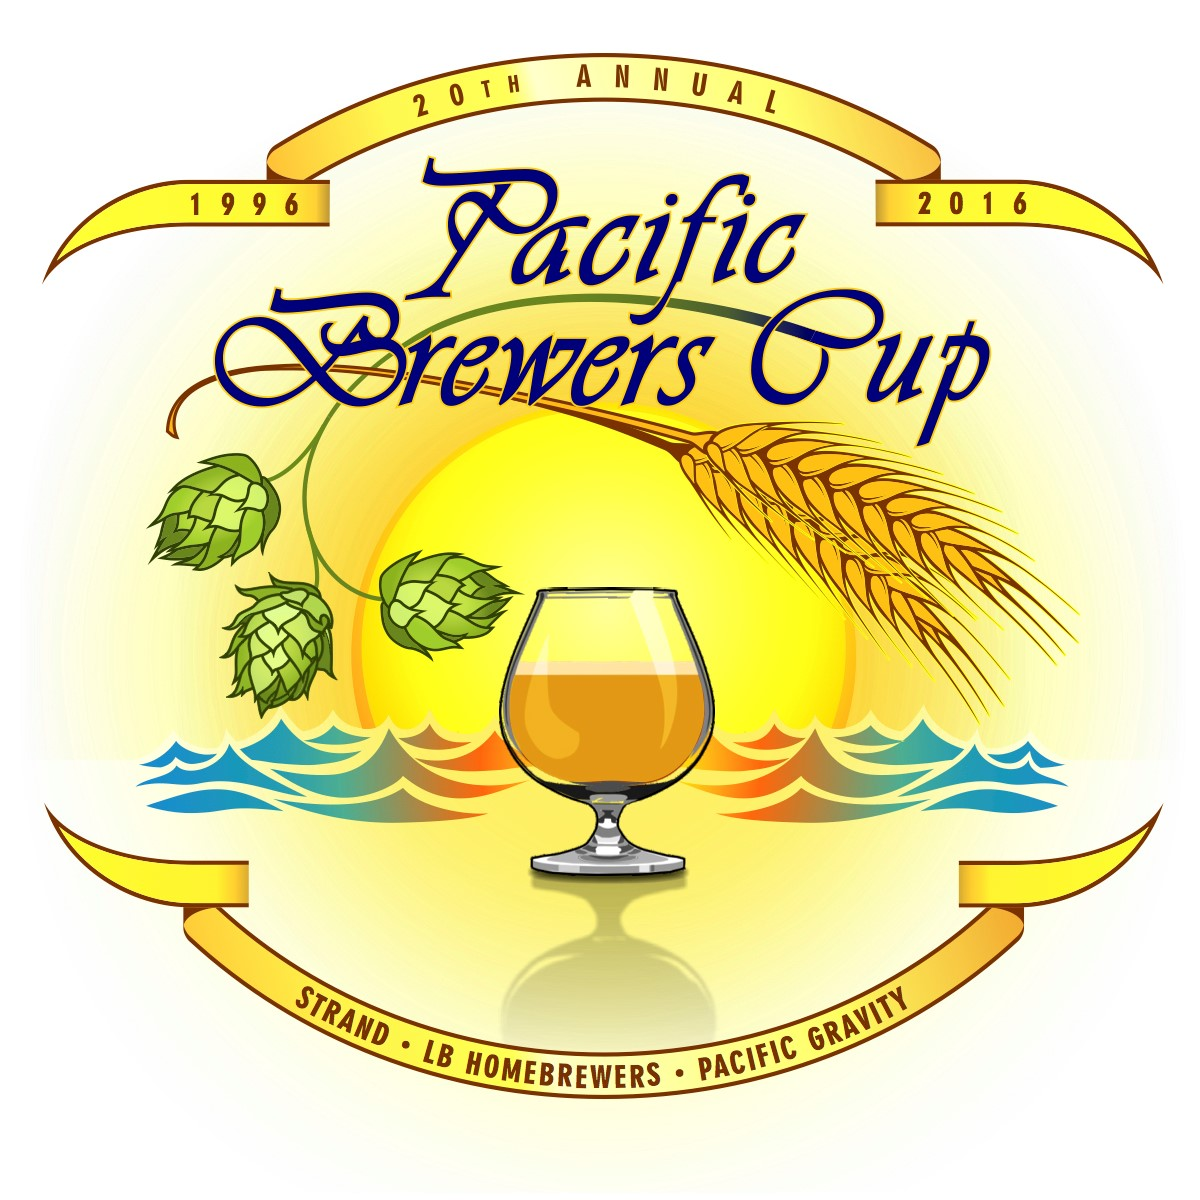 2016 Pacific Brewers Cup.